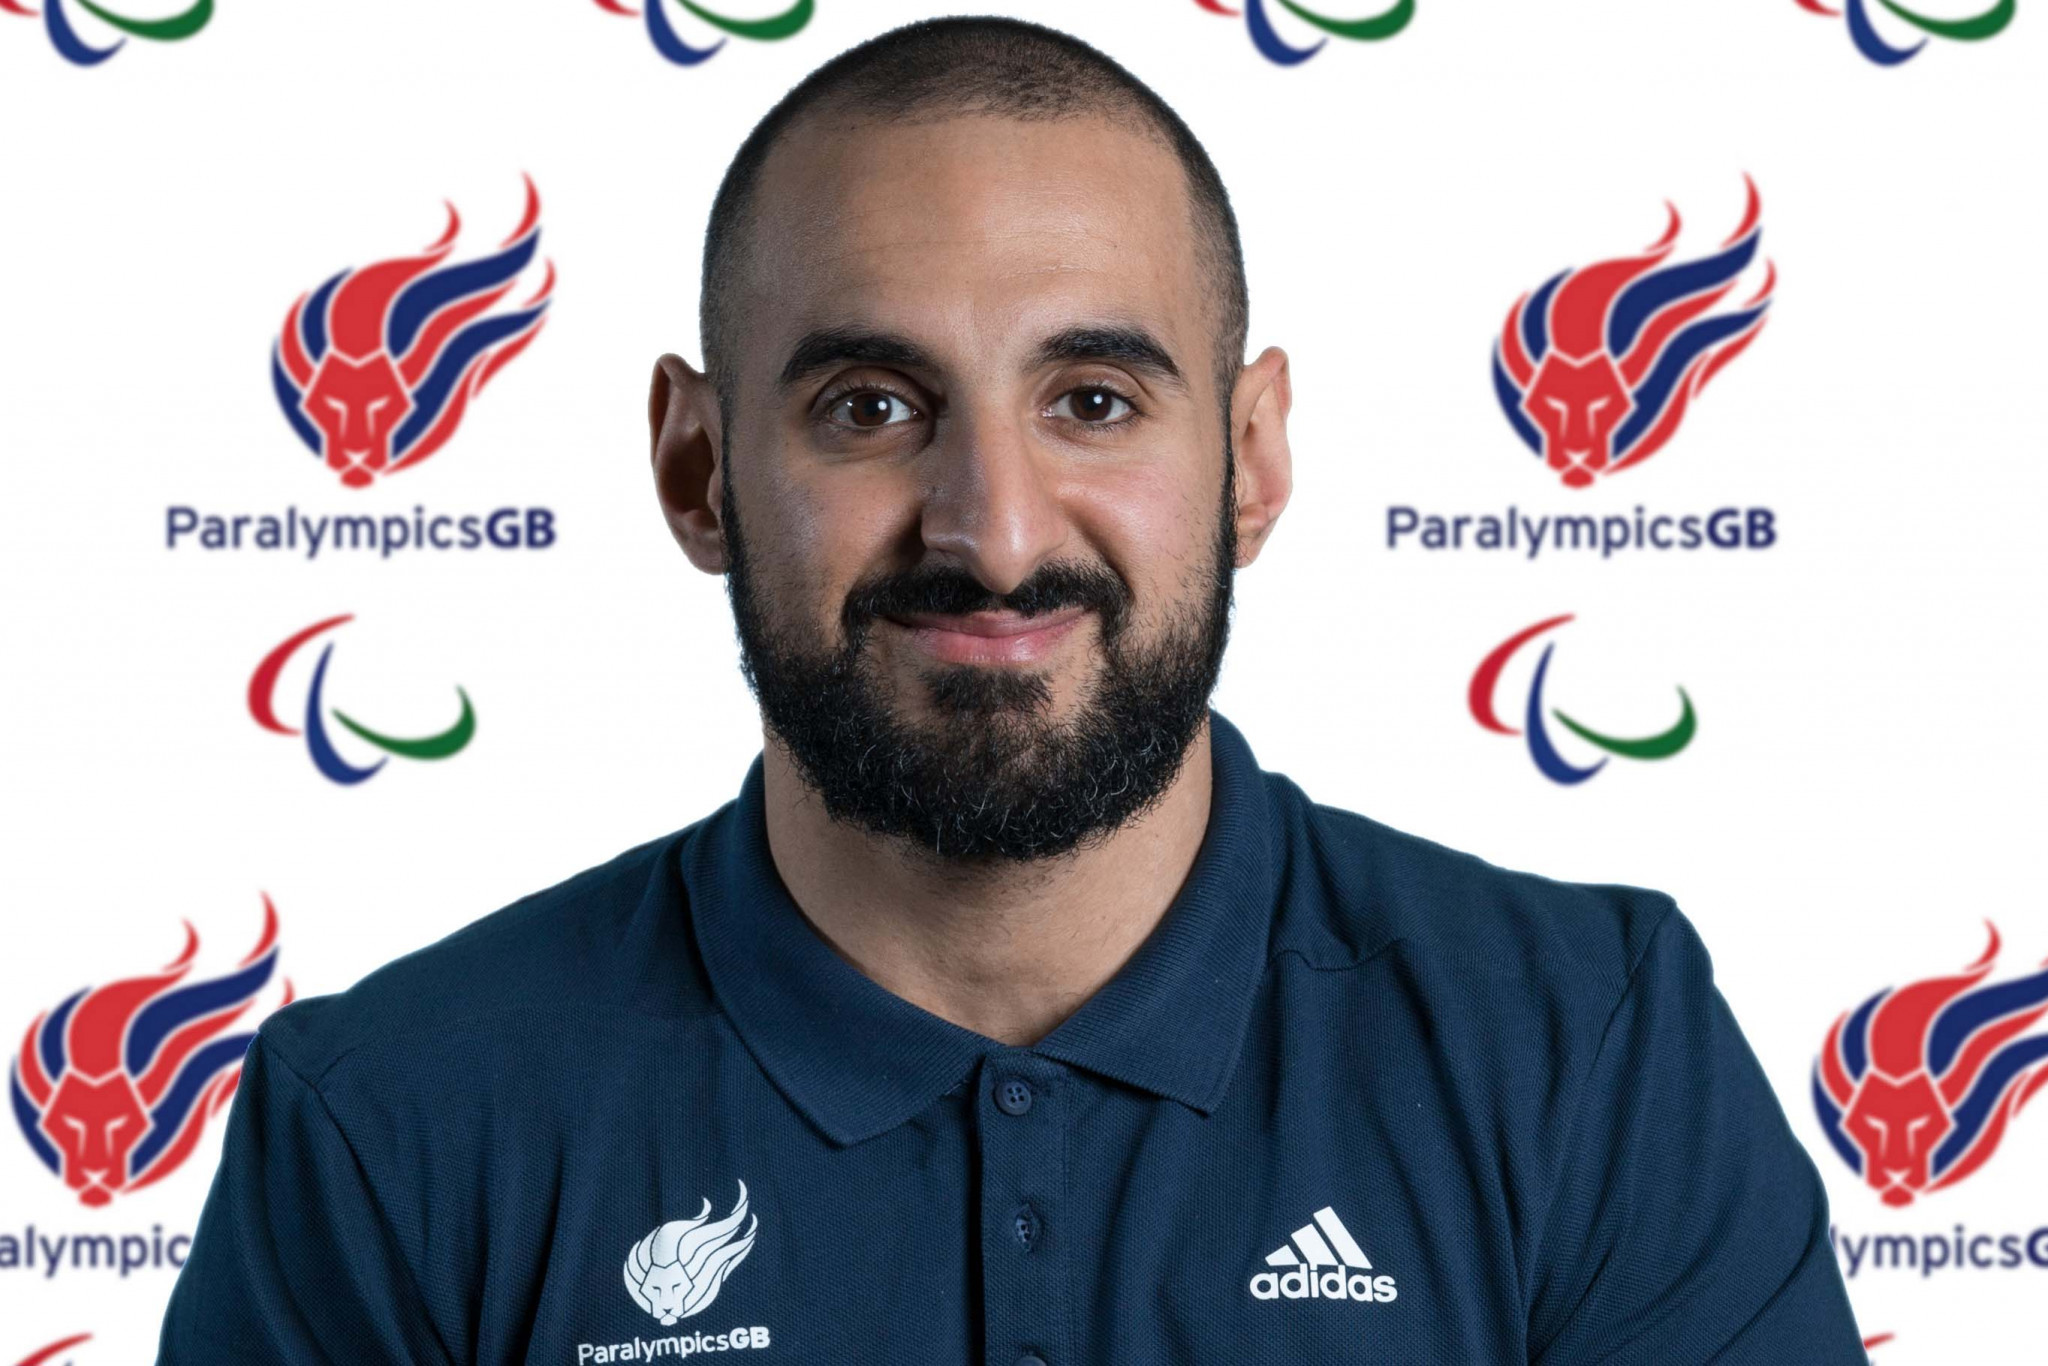 Powerlifter Ali Jawad, a silver medallist at Rio 2016, has been elected to the BPA Athletes' Commission ©ParalympicsGB